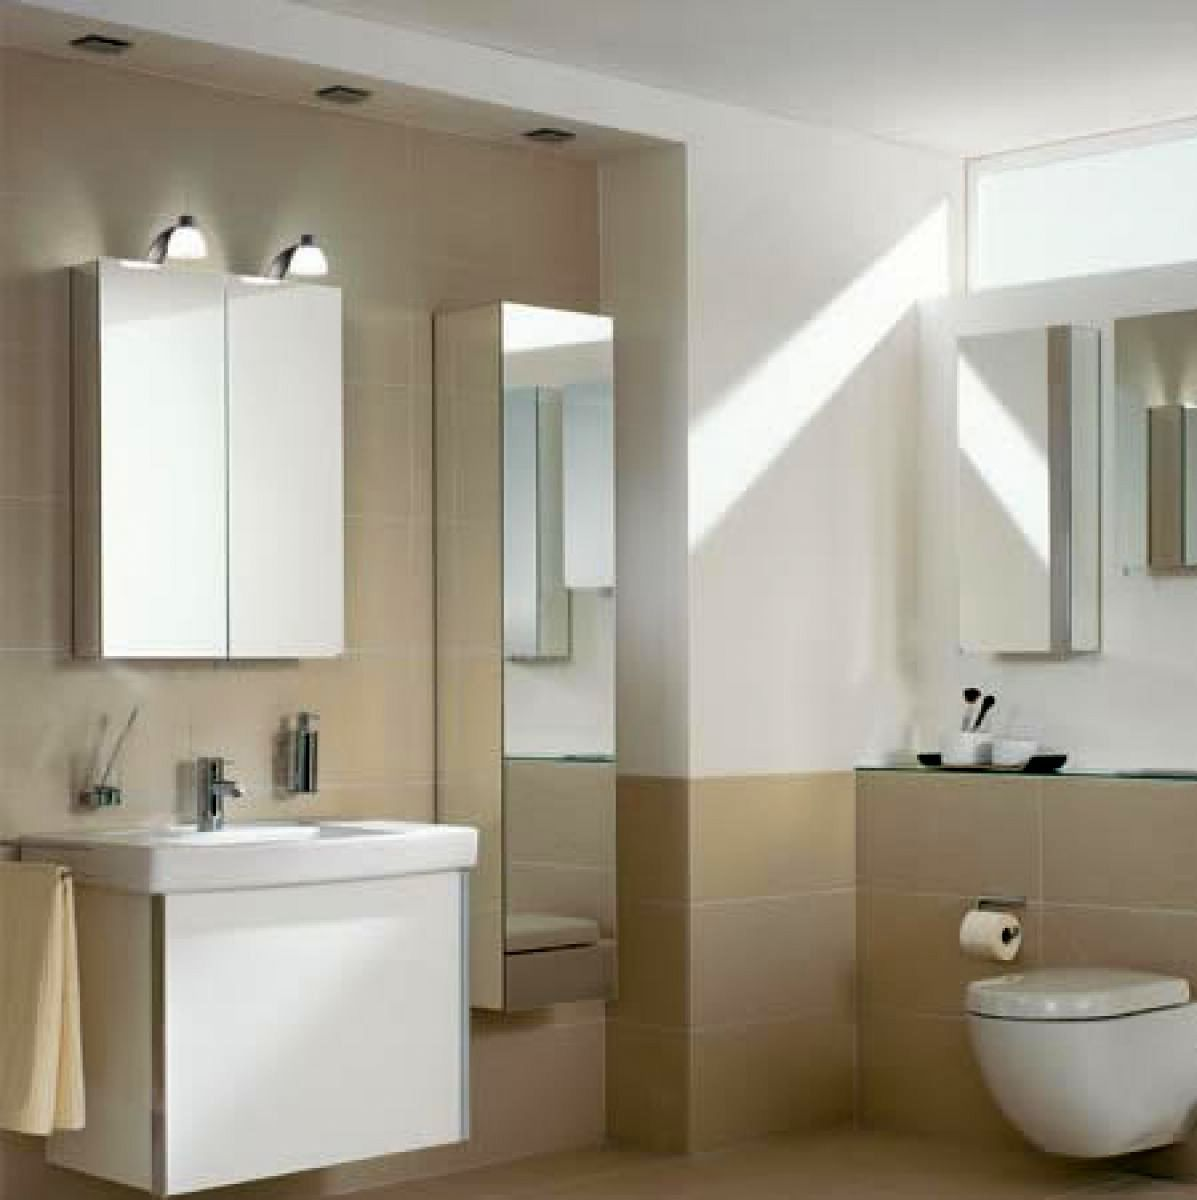 keuco royal tall mirror cabinet uk bathrooms - Bathroom Cabinets Keuco